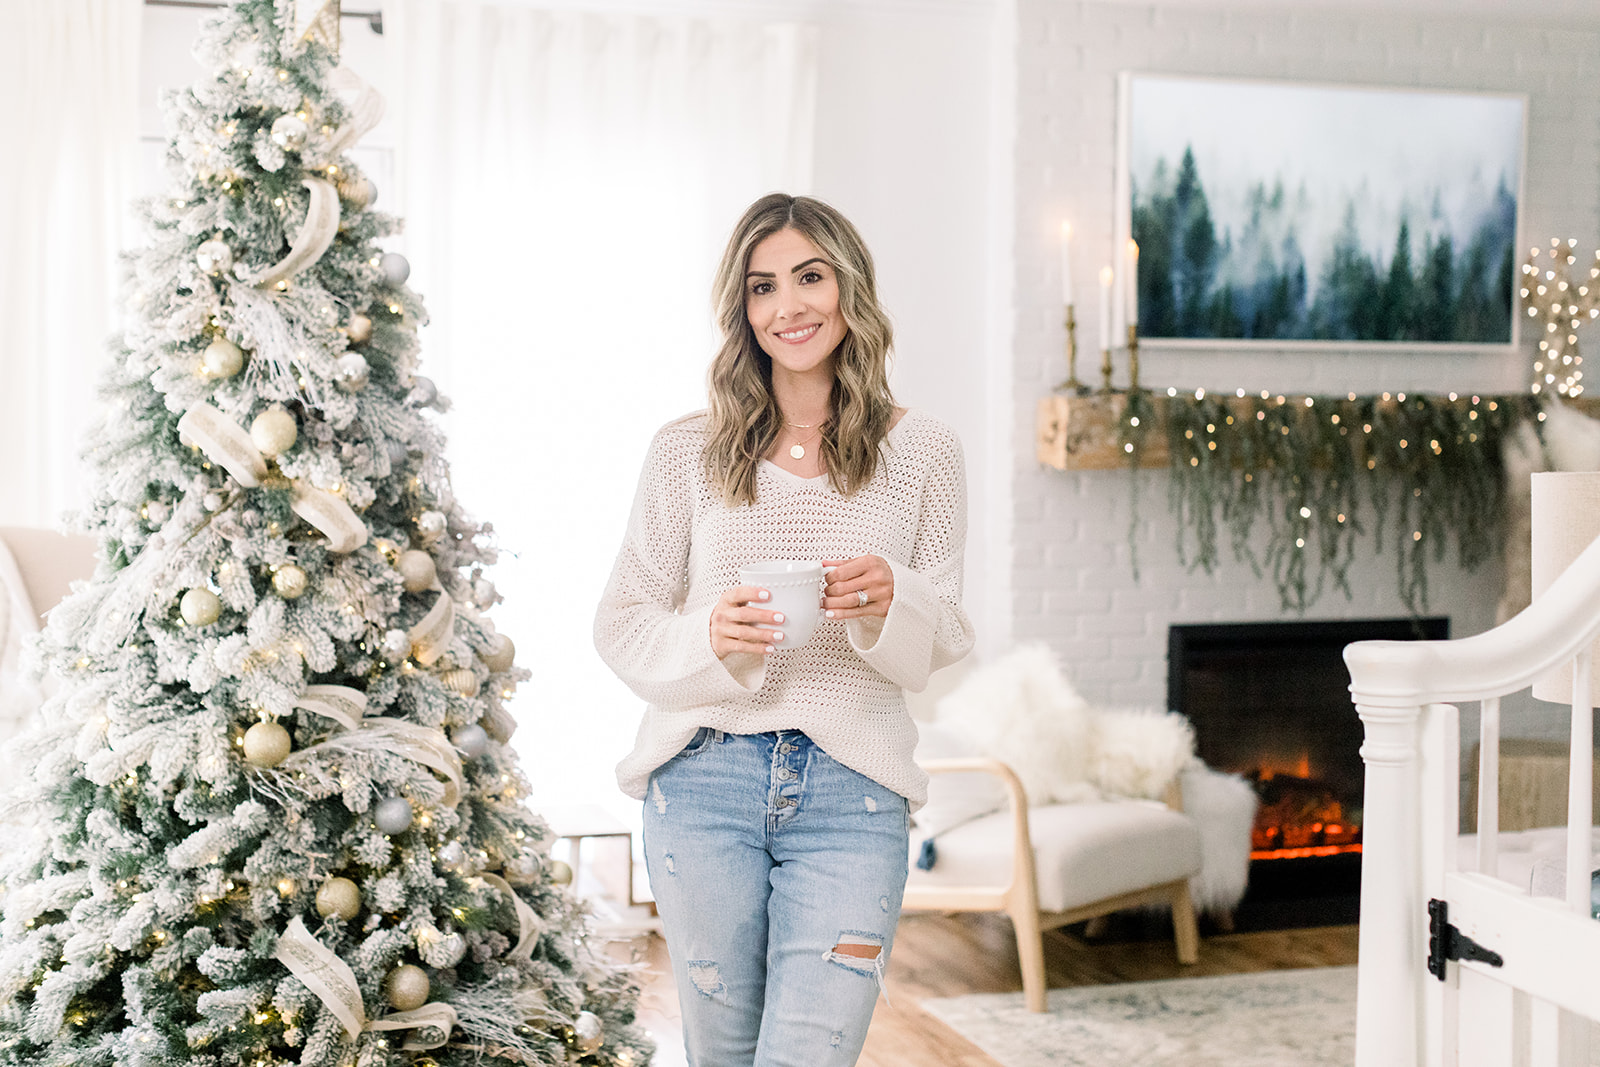 Connecticut life and style blogger Lauren McBride launches her second self-designed collection on QVC to celebrate Christmas in July.